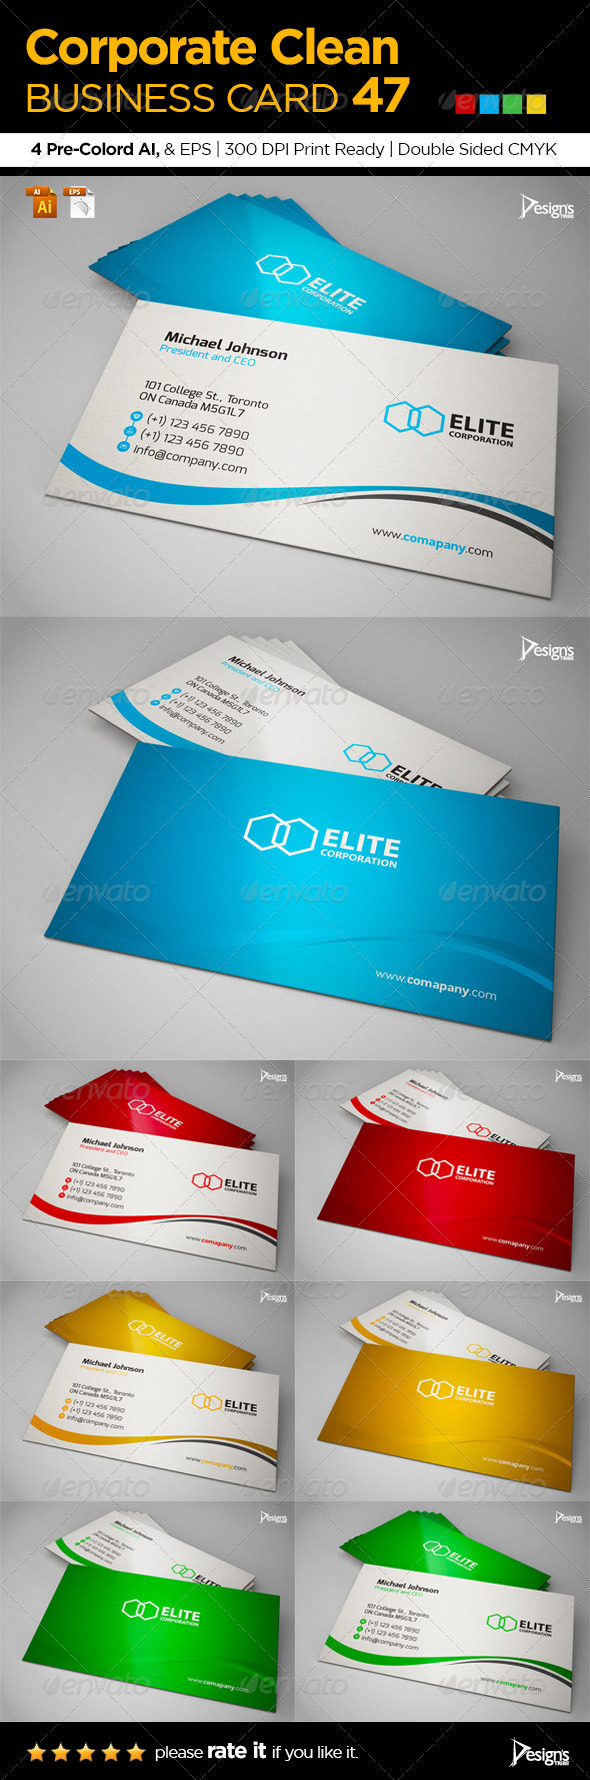 GraphicRiver Corporate Clean Business Card 47 6400570